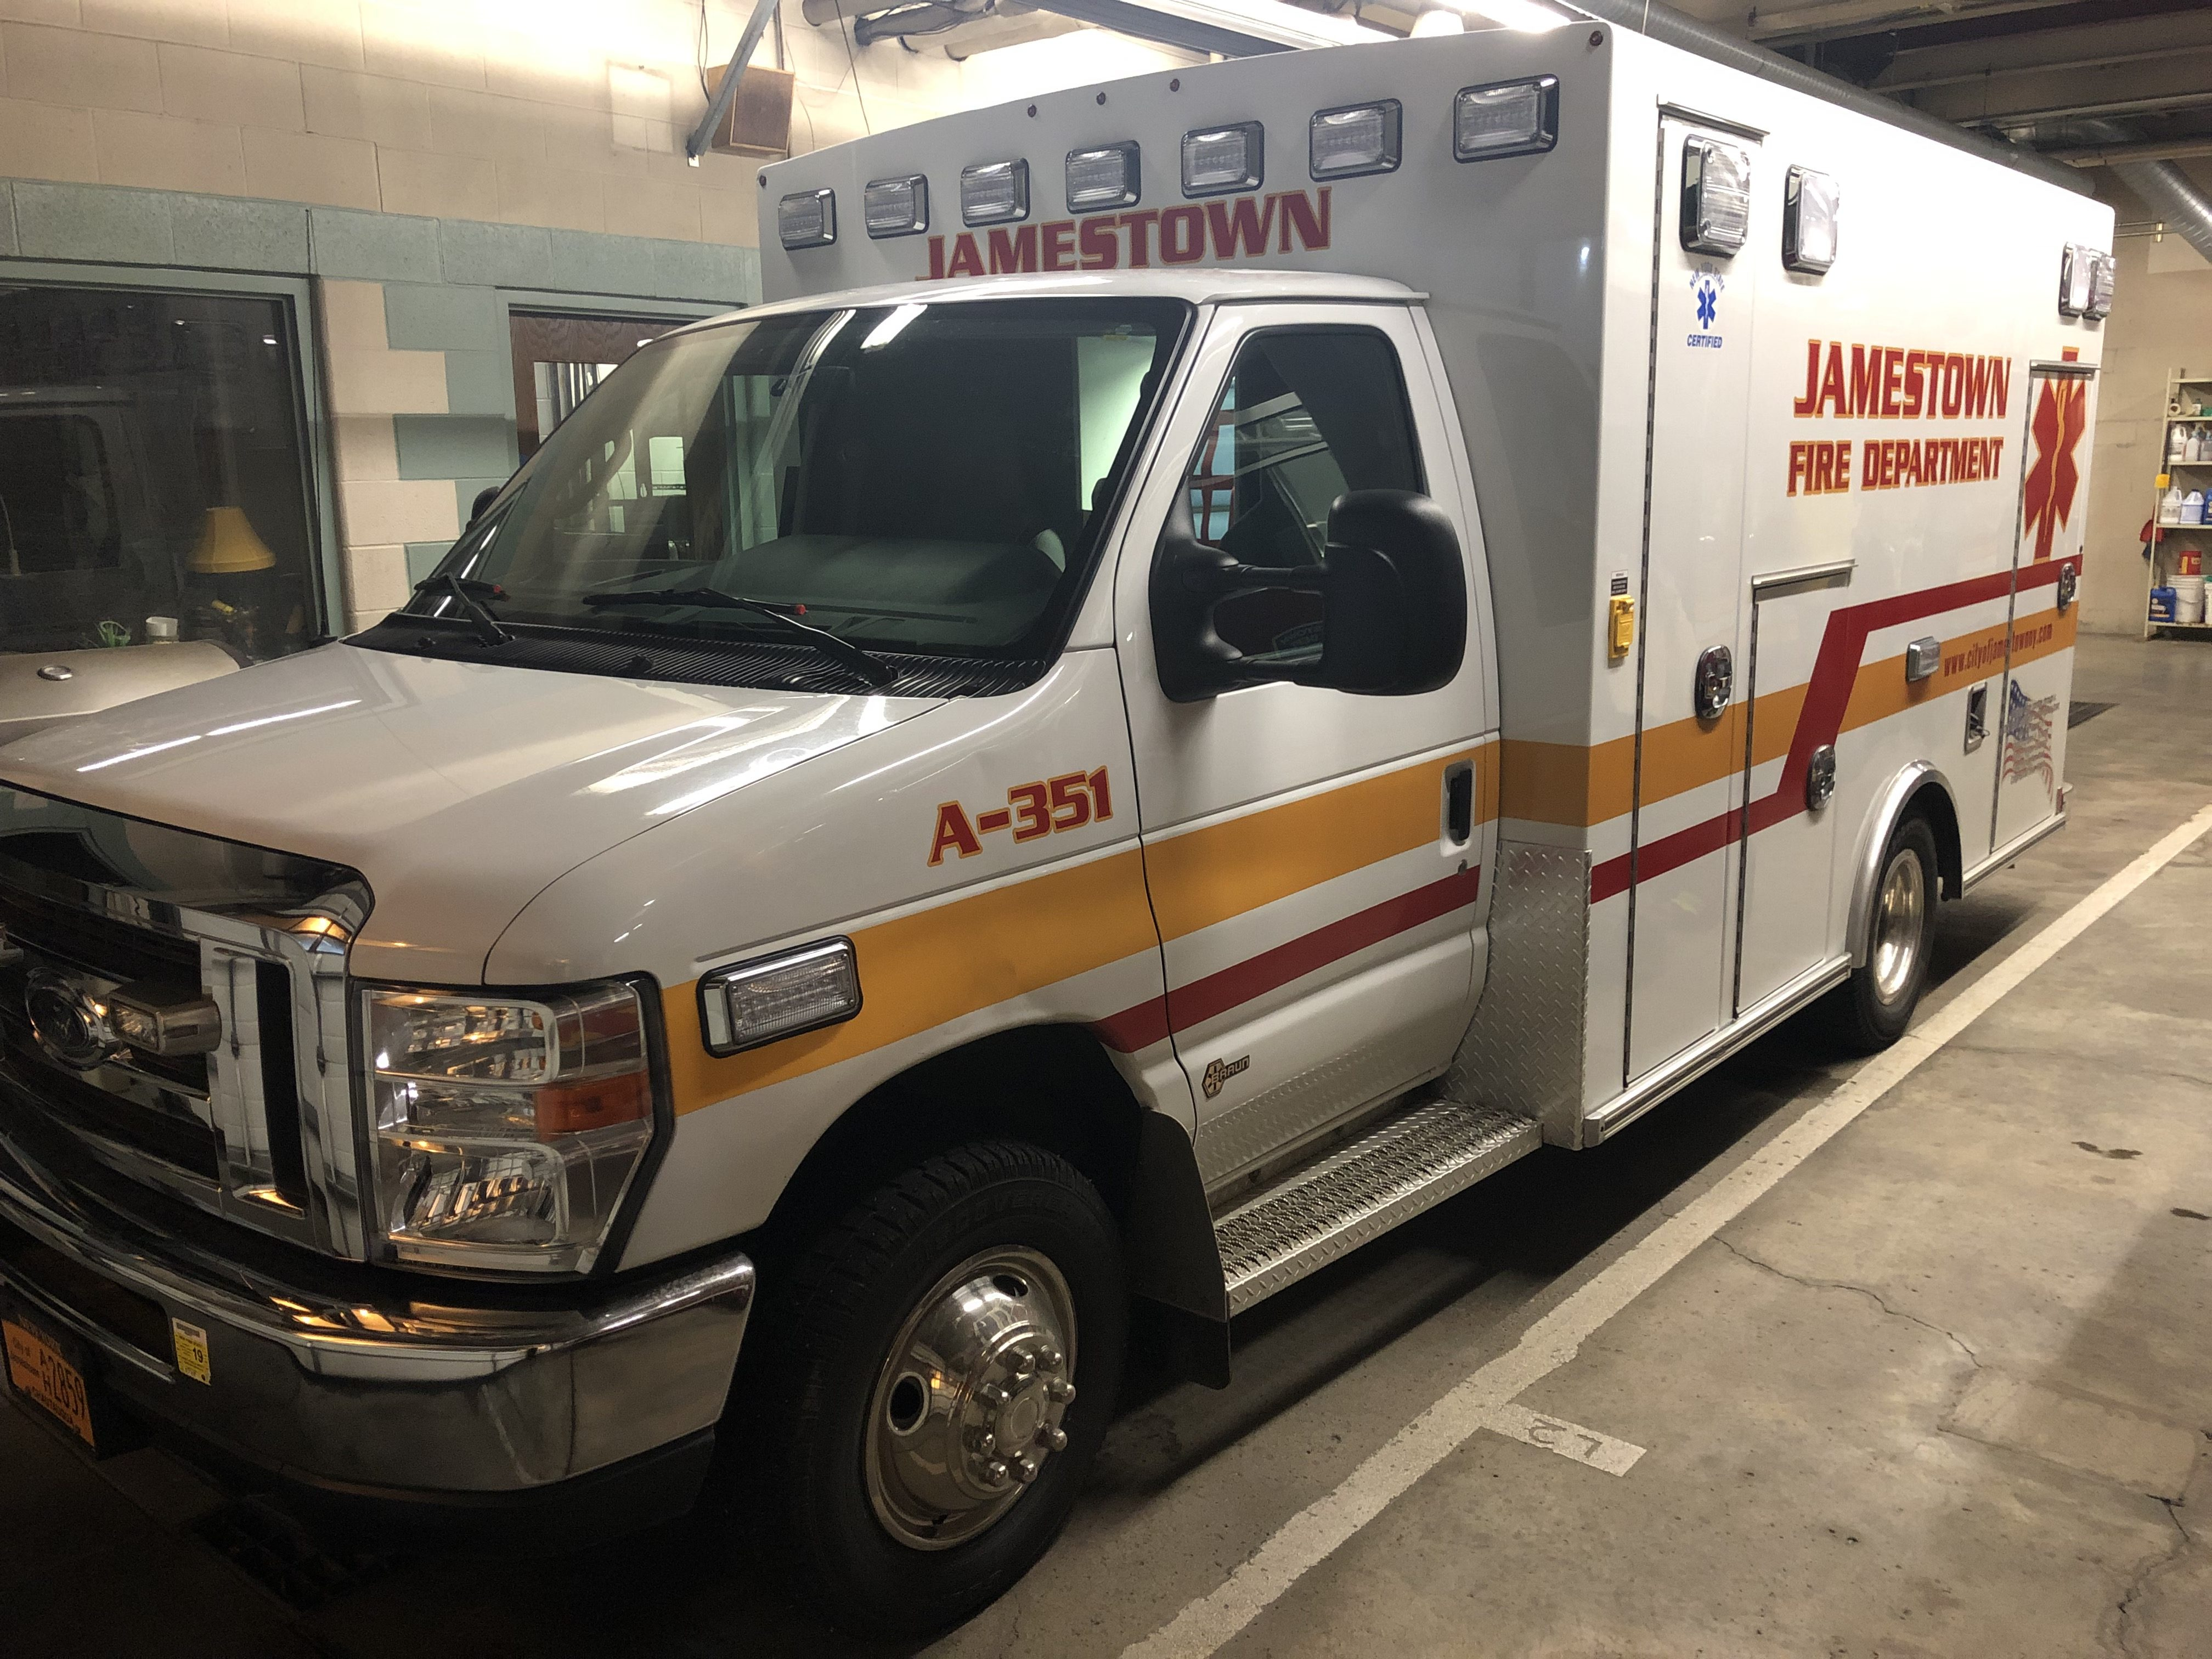 This ambulance serves Jamestown Fire Department's increasing need for emergency medical service, but more help is needed.